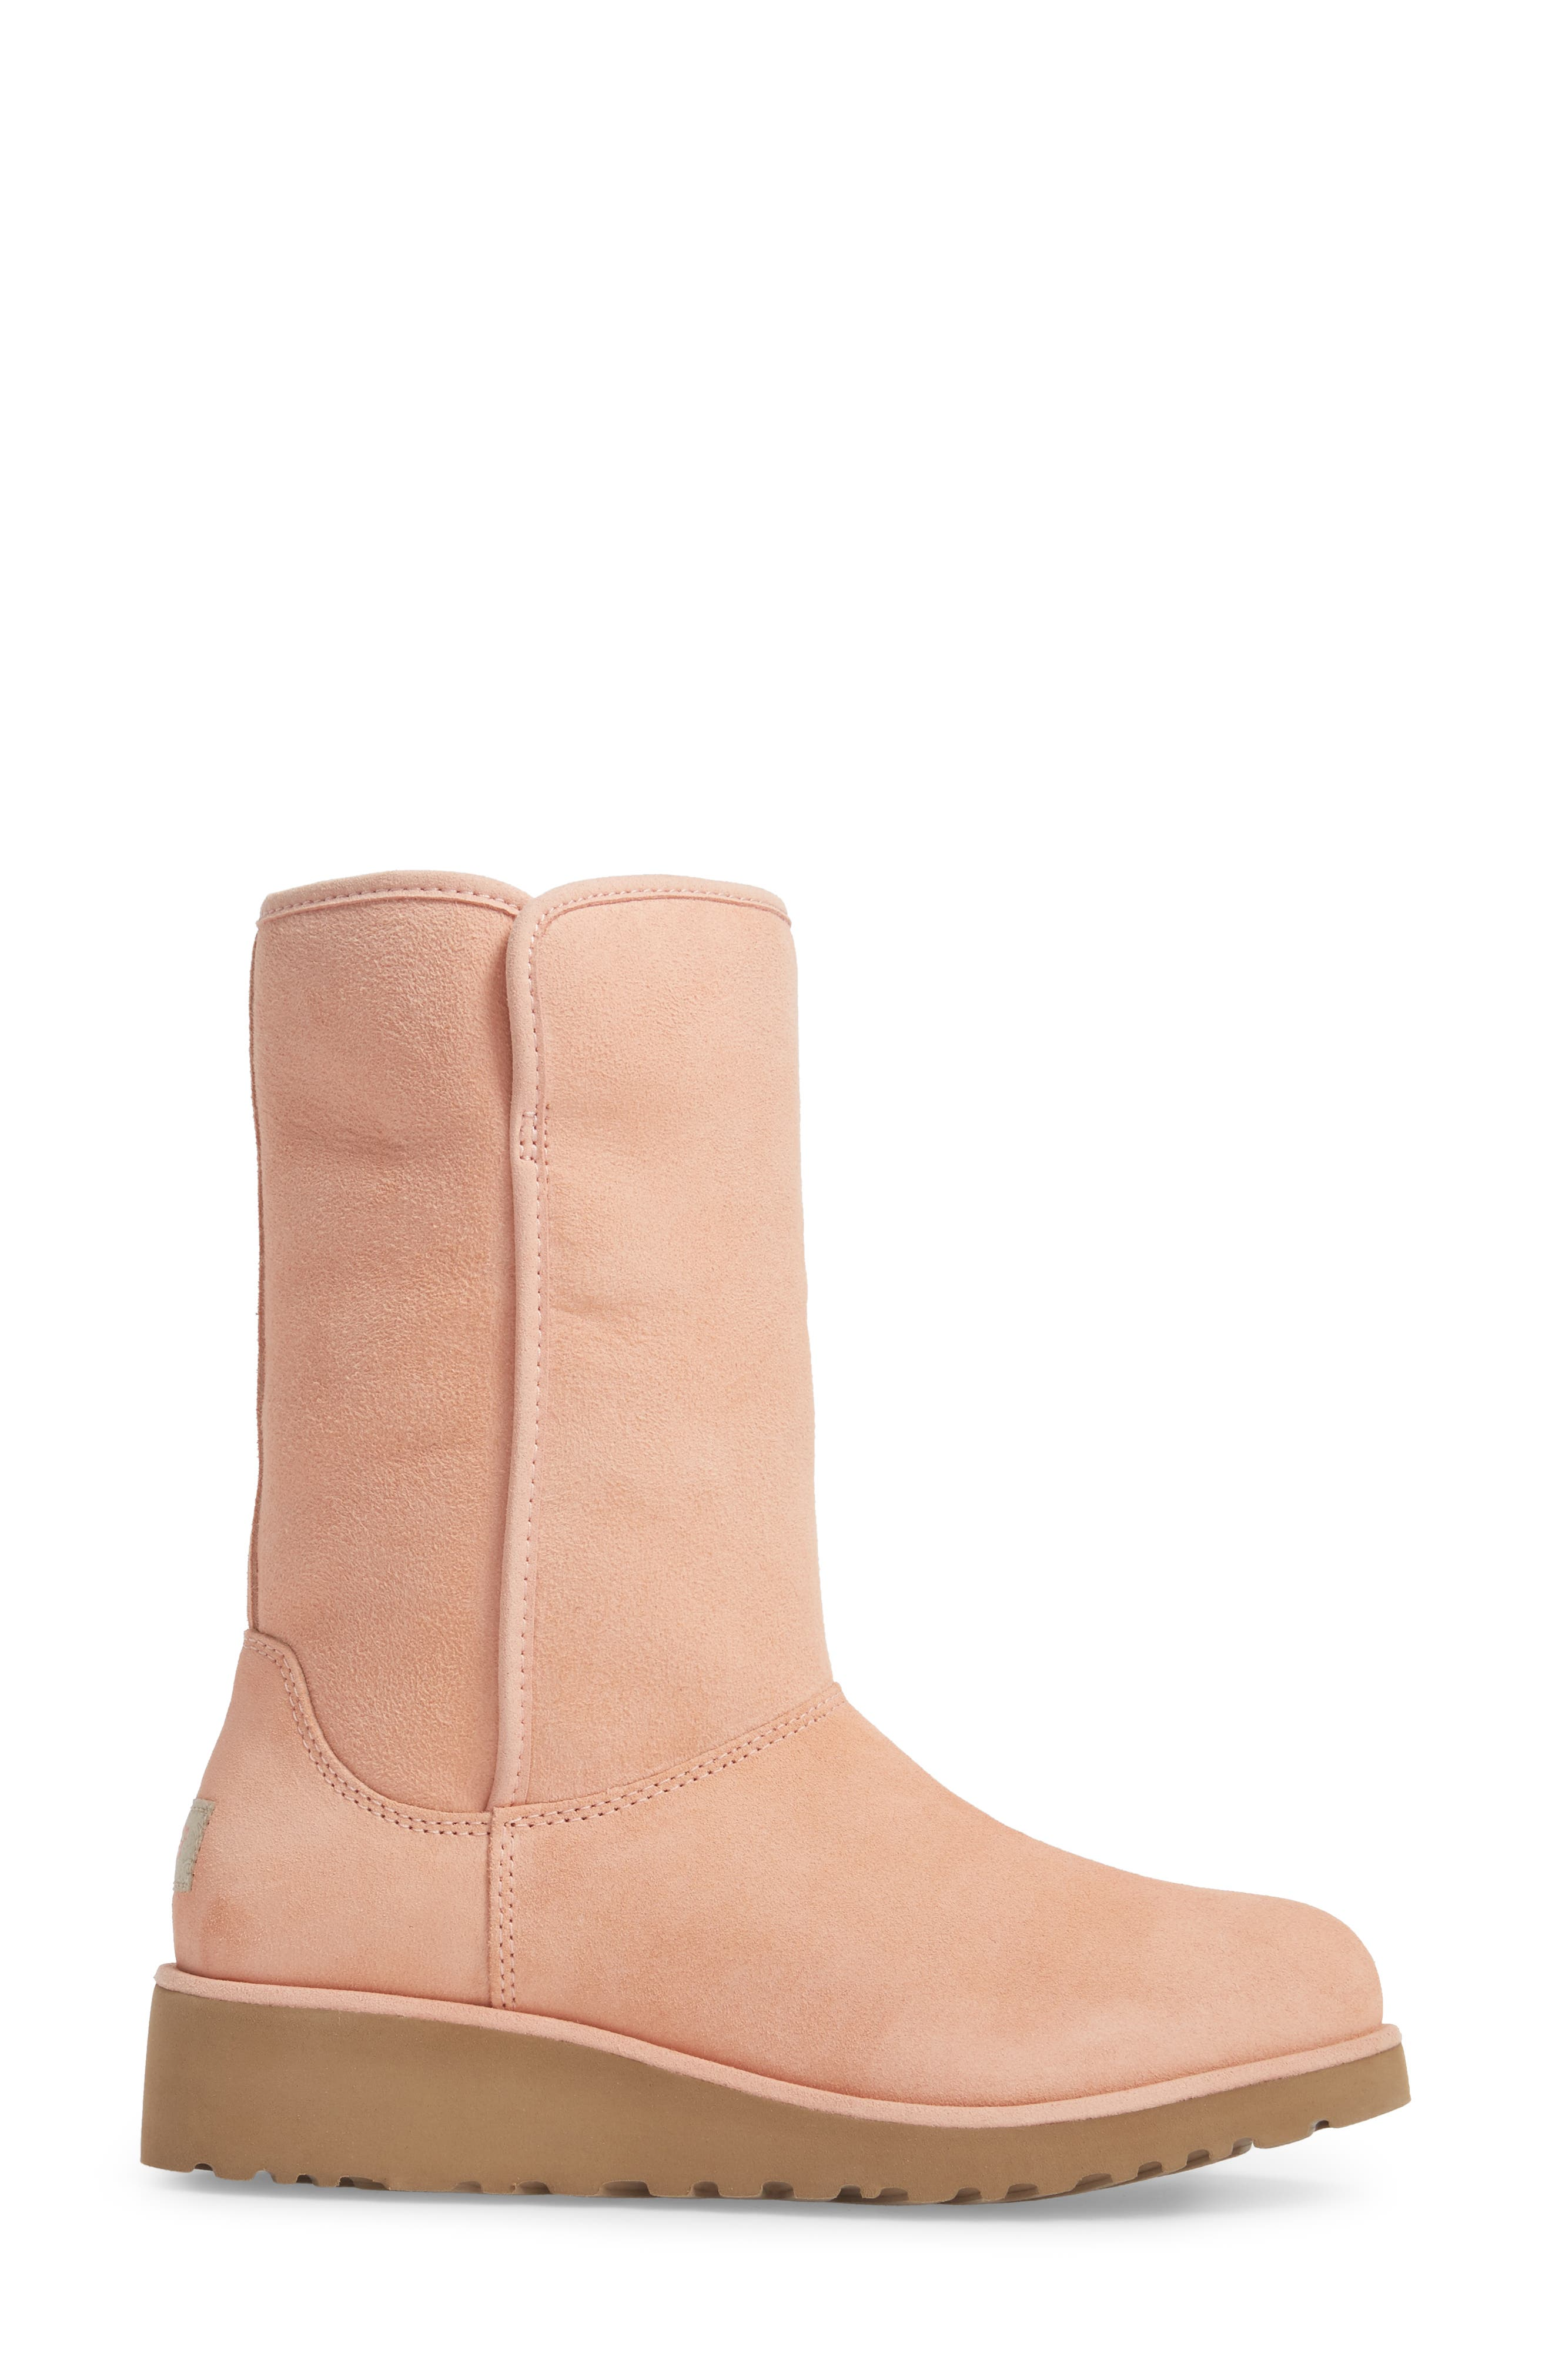 Alternate Image 3  - UGG® Amie - Classic Slim™ Water Resistant Short Boot (Women)